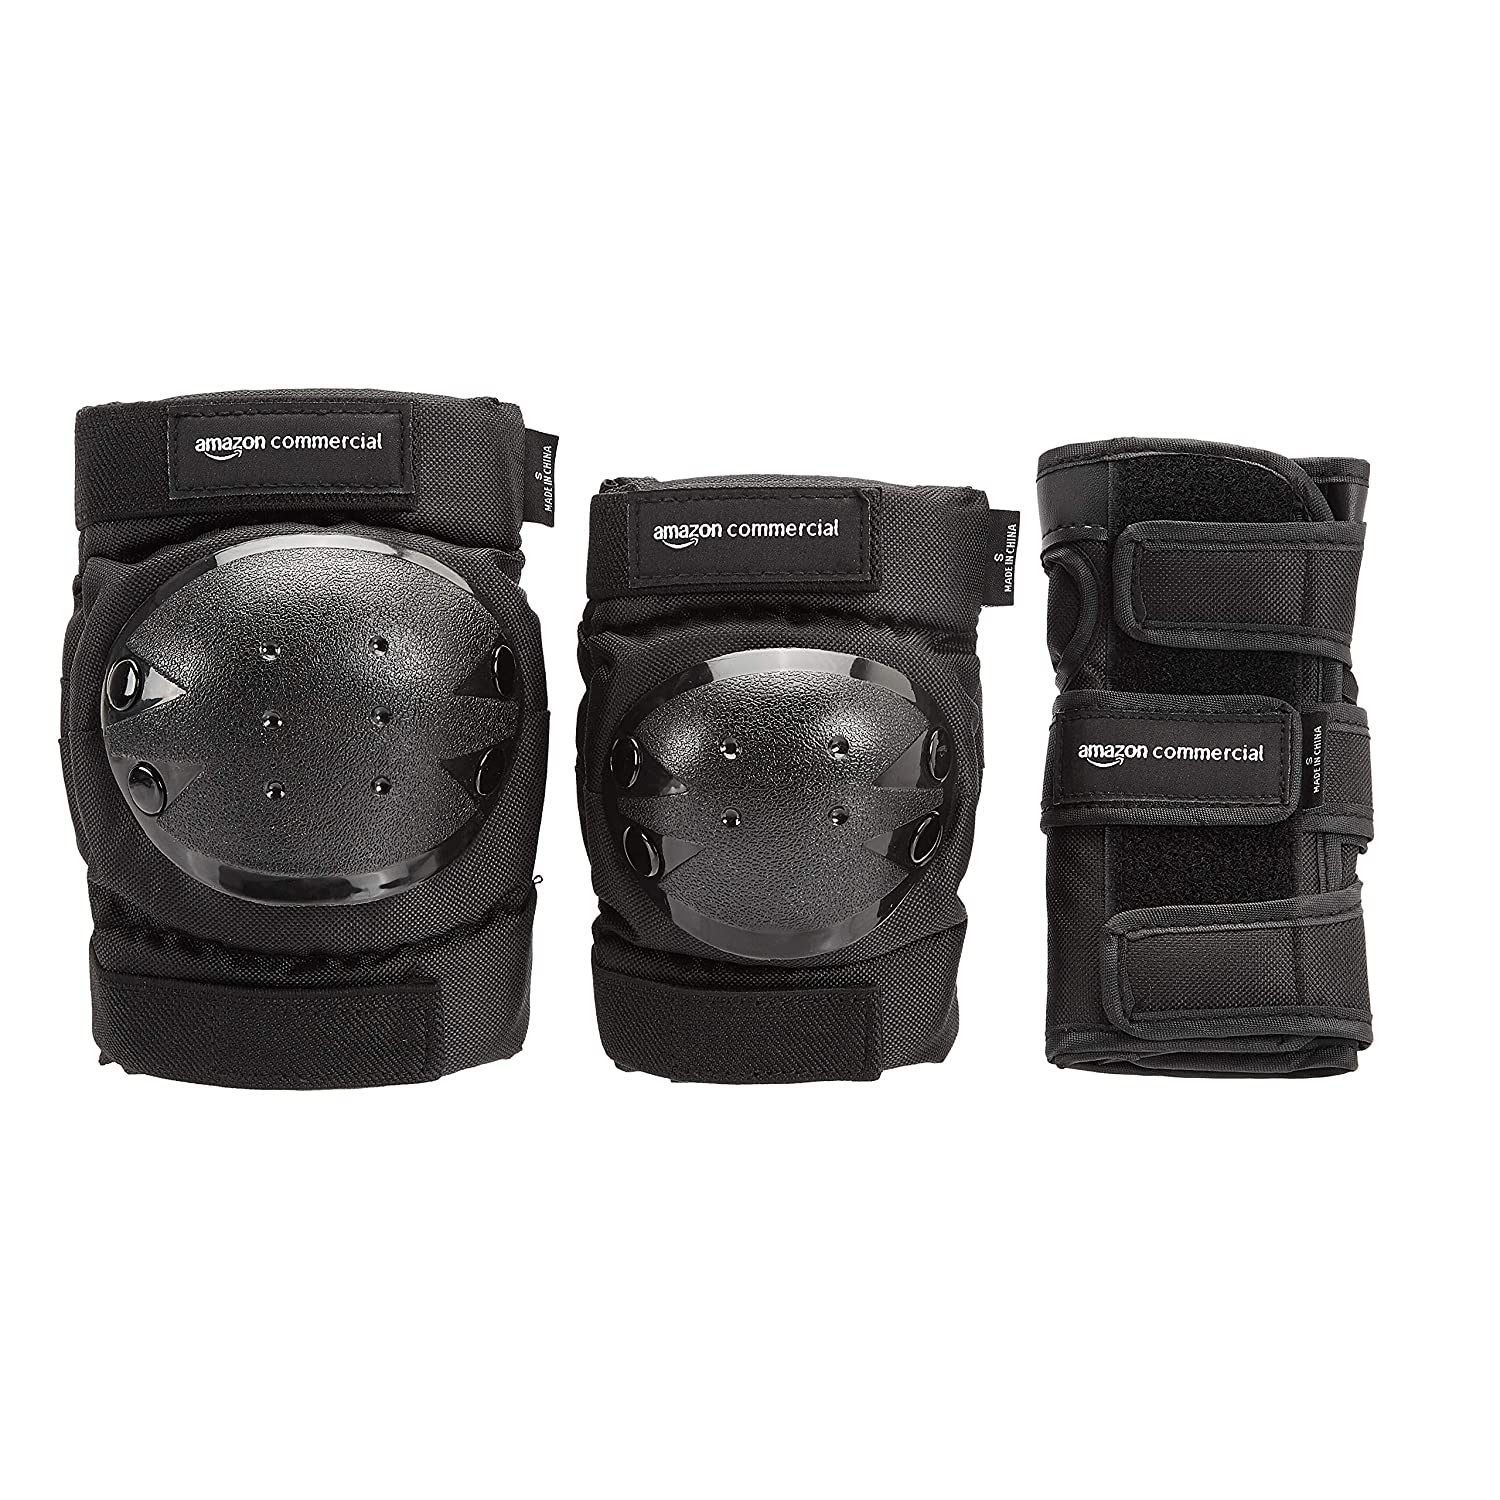 Large Knee Pads Rollerblade Protective Skate Gear w// Wristguards /& Elbow Pads